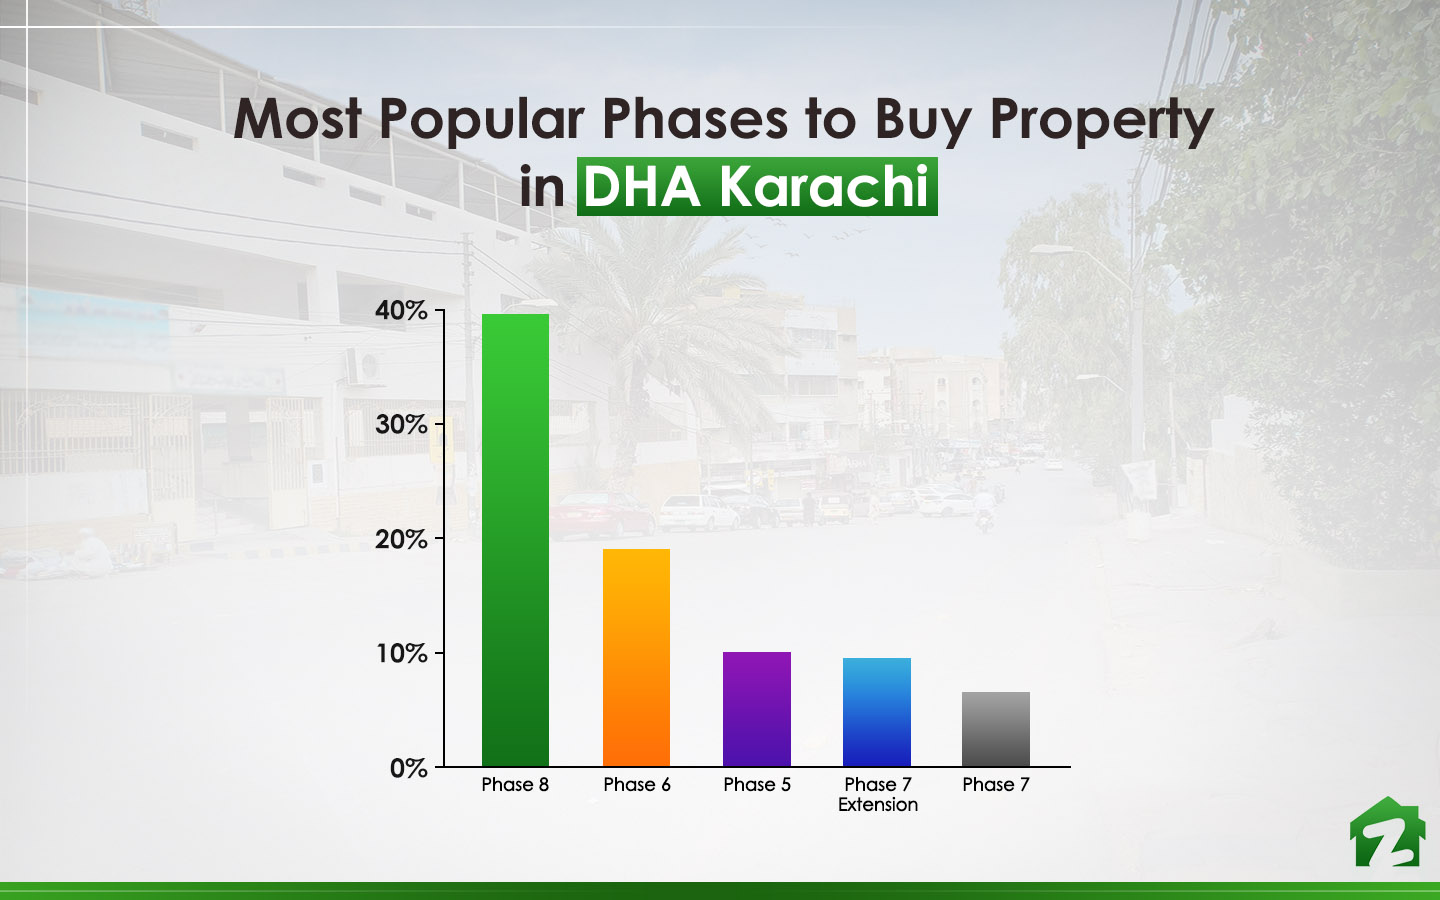 Phase 8, tops the chart, when it comes to most popular phases to Buy a property in DHA Karachi